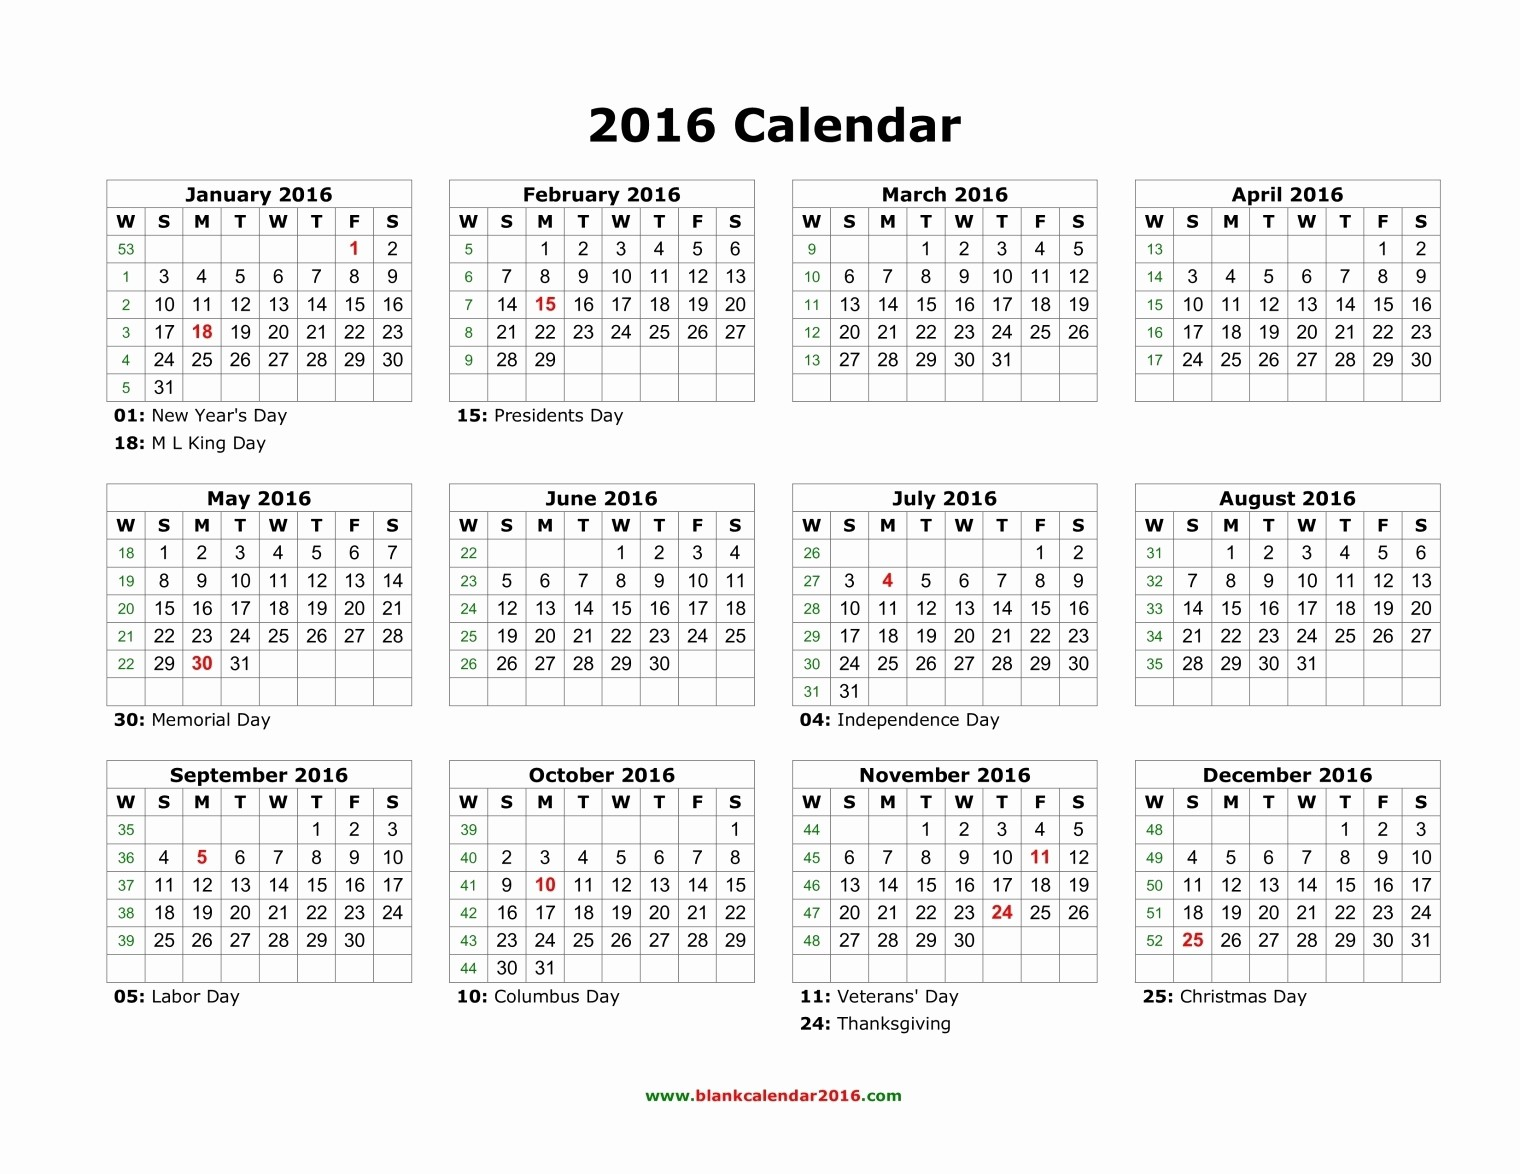 Free Printable Calendar 2016 Template Inspirational 2016 Yearly Calendar with Holidays Printable